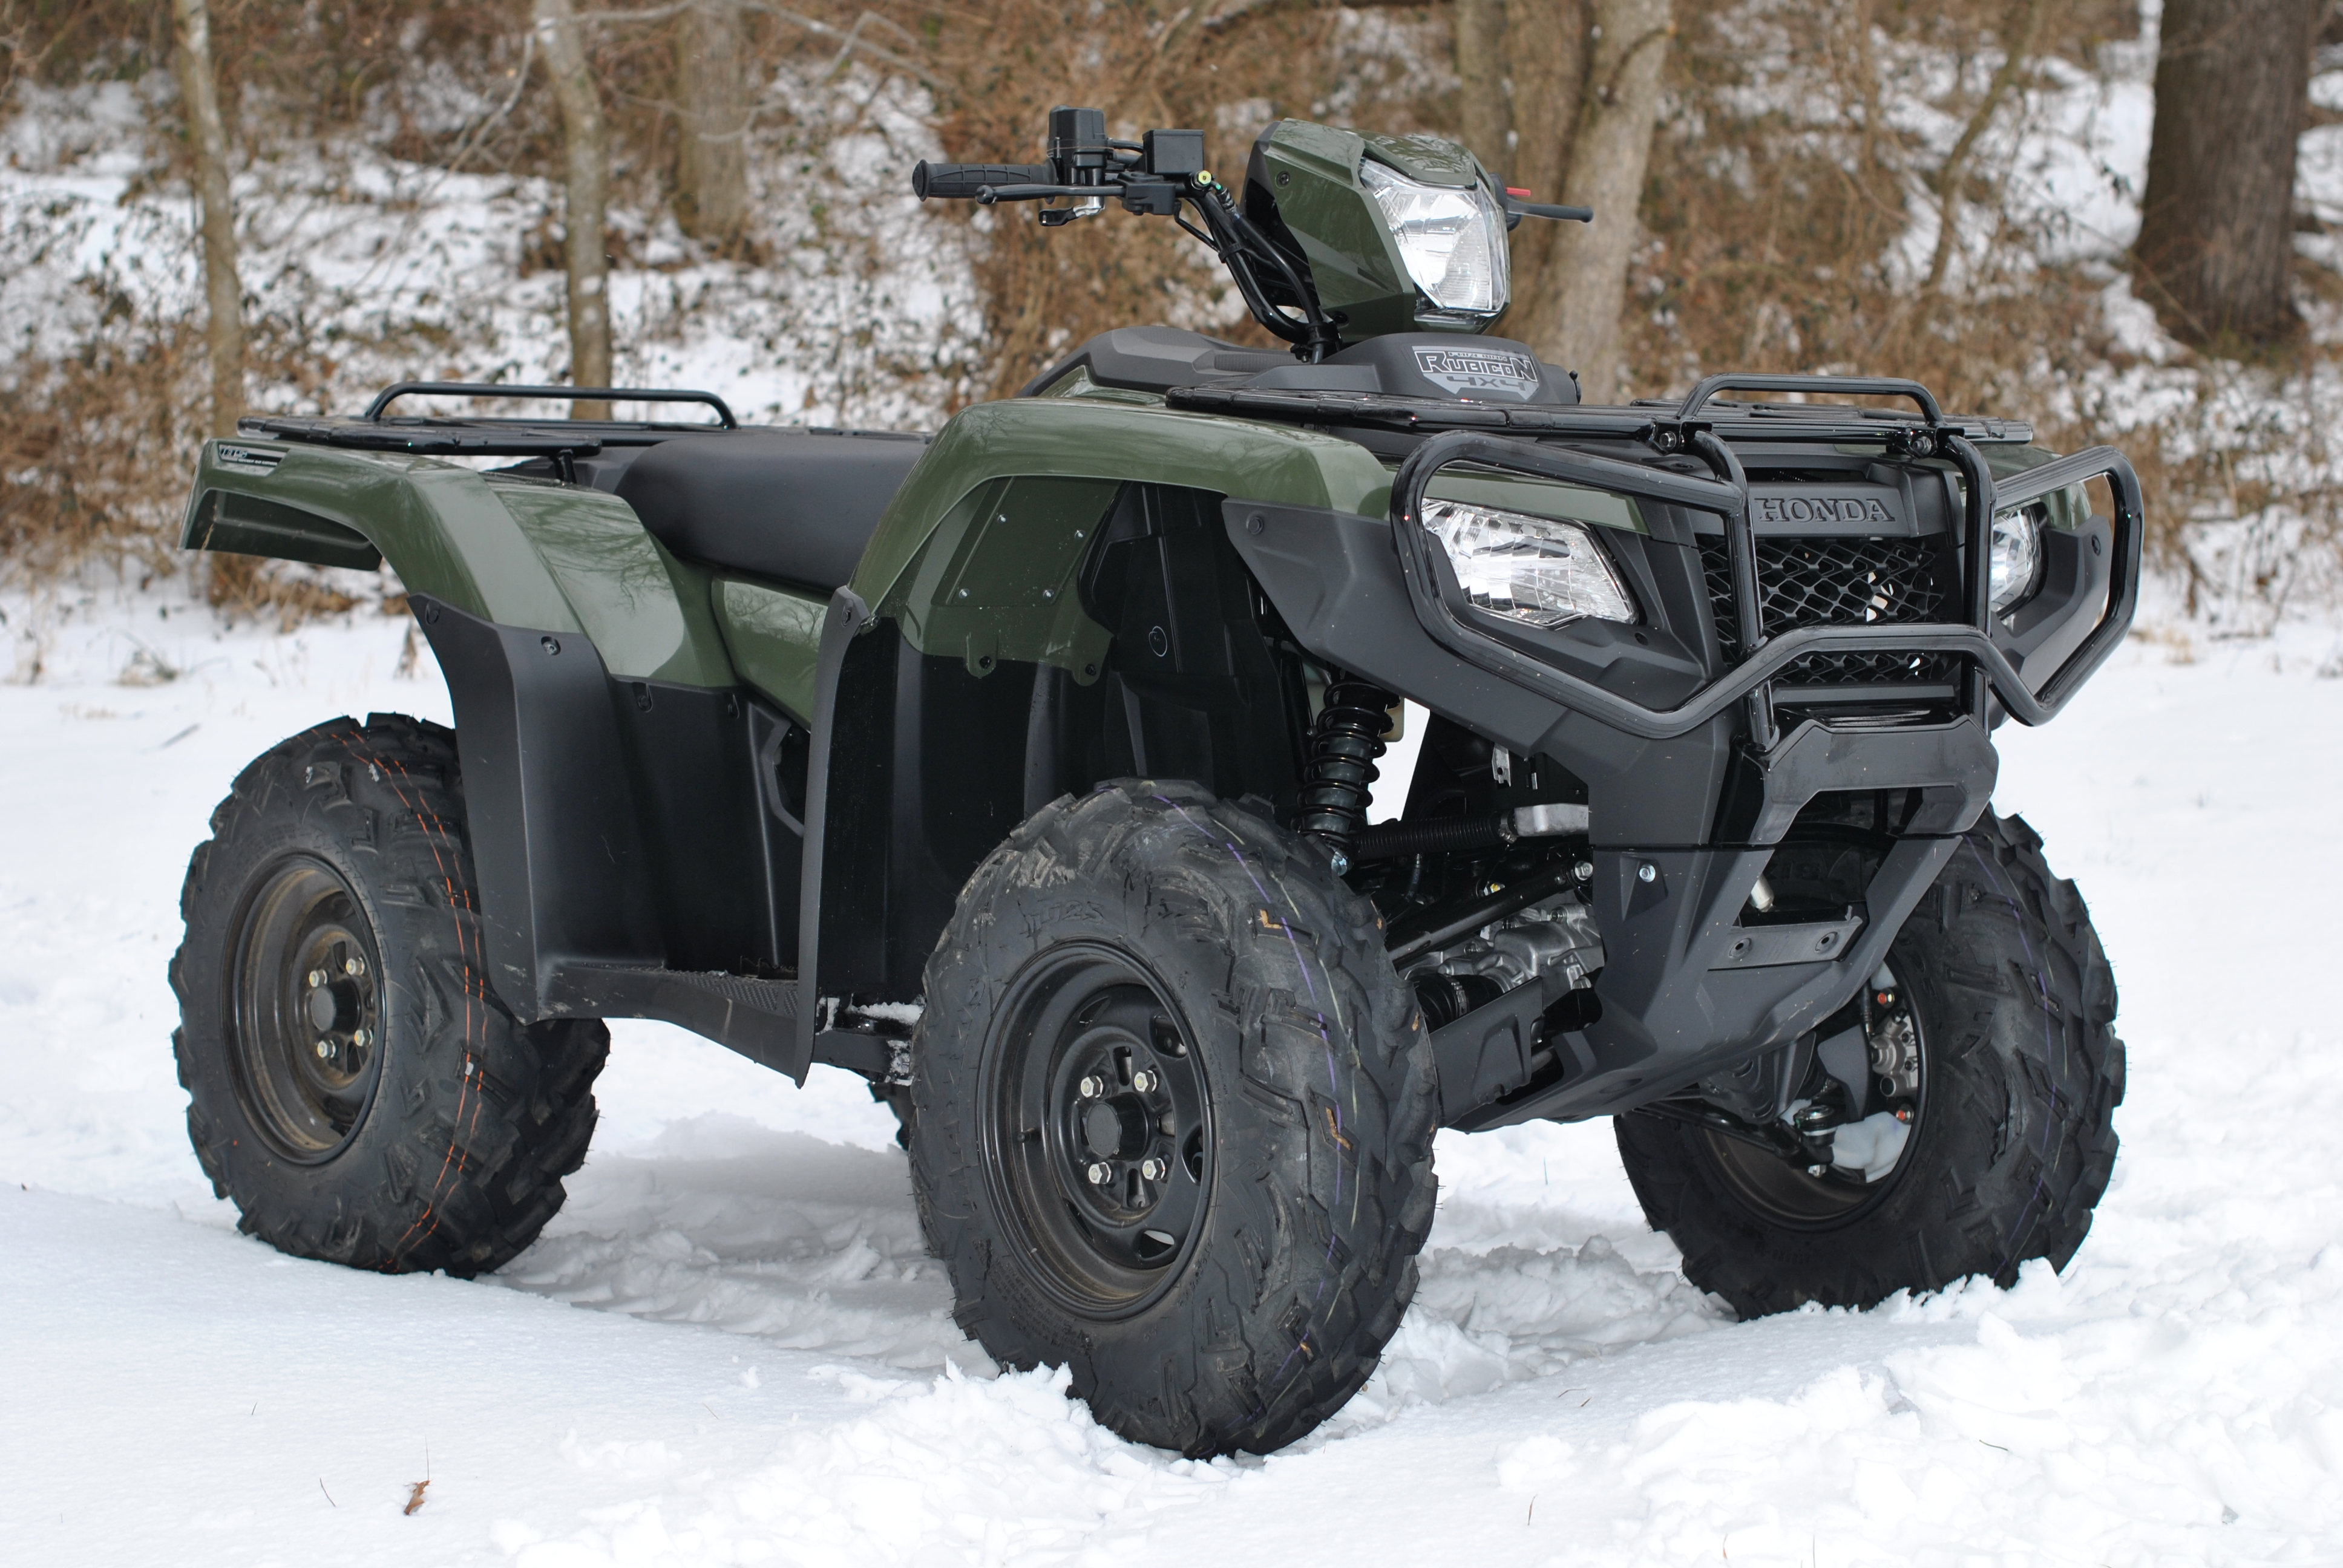 2015 Honda Foreman Rubicon 4×4 – Review | Down the Trail: ATV